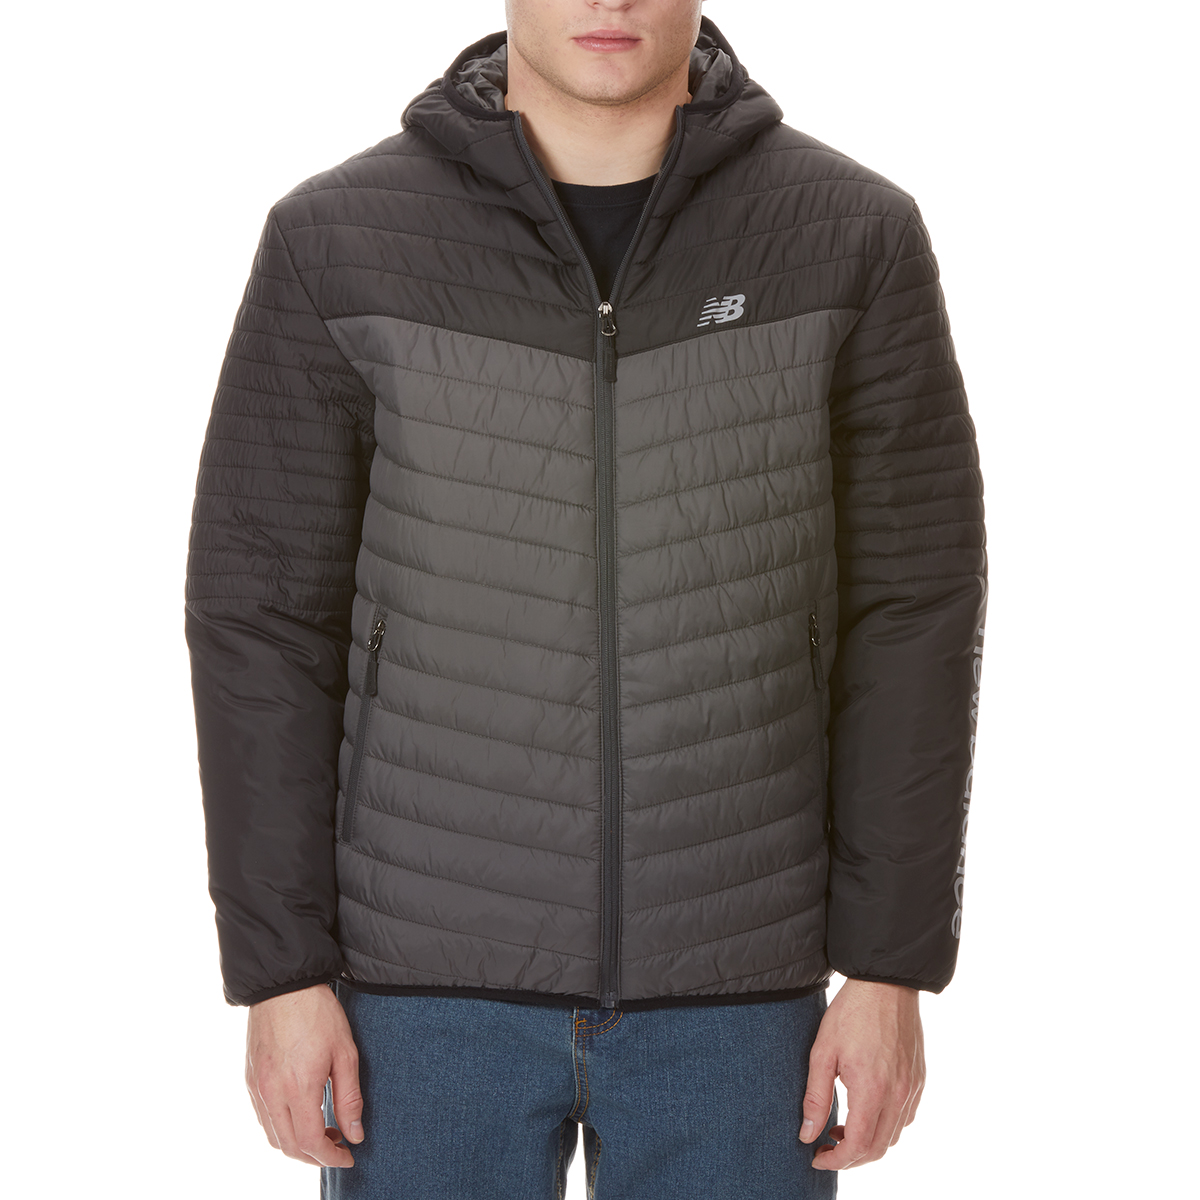 New Balence Men's Colorblocked Hooded Cire Puffer Jacket - Black, L